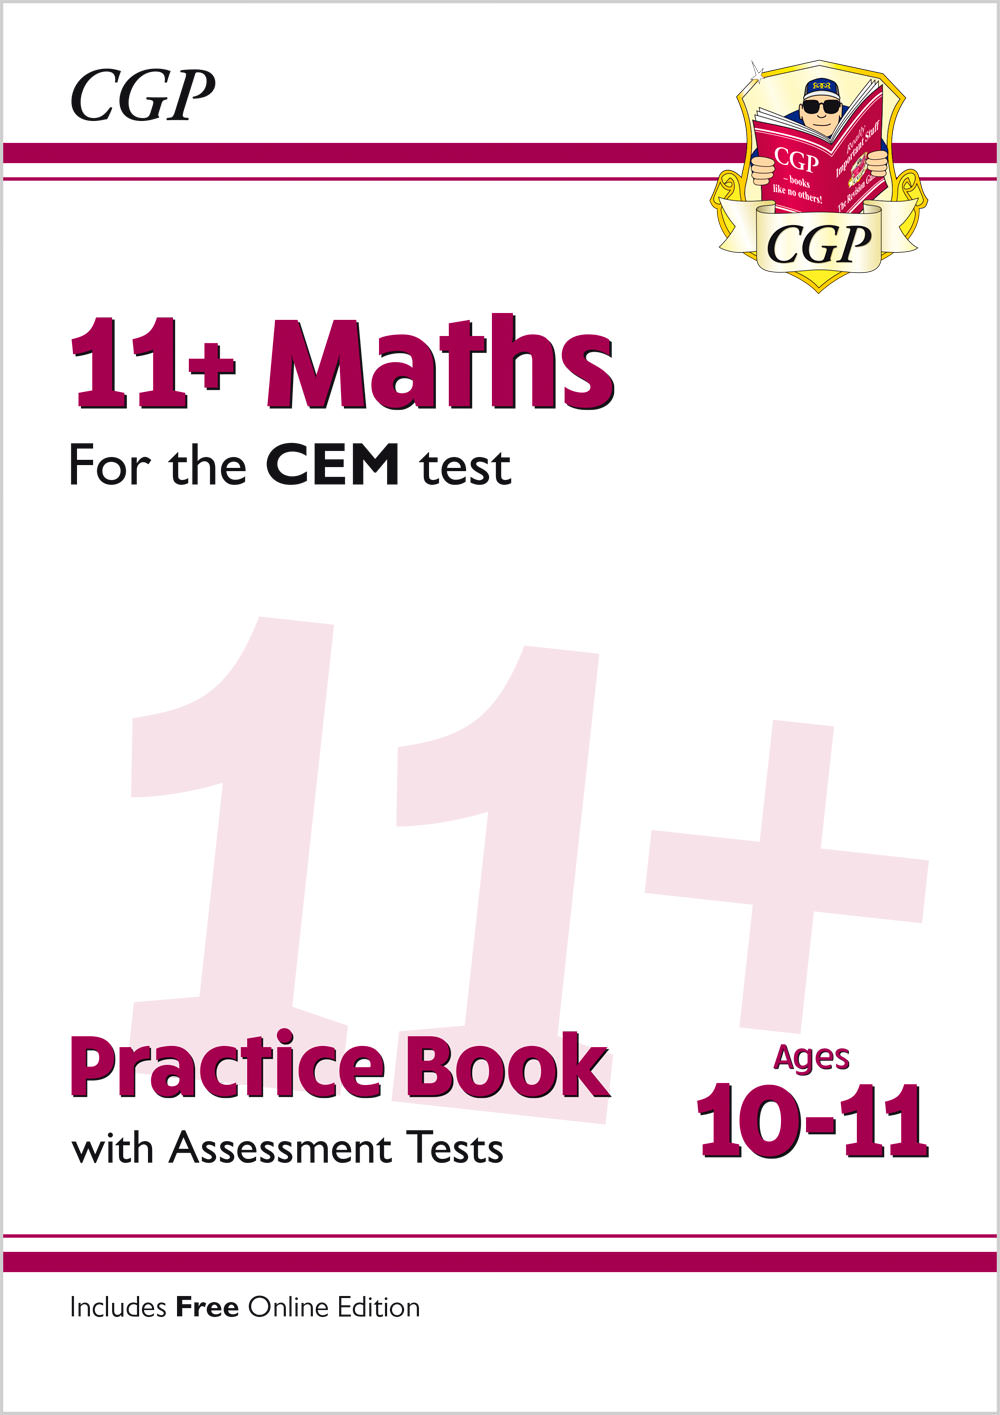 M6QDE2 - 11+ CEM Maths Practice Book & Assessment Tests - Ages 10-11 (with Online Edition)